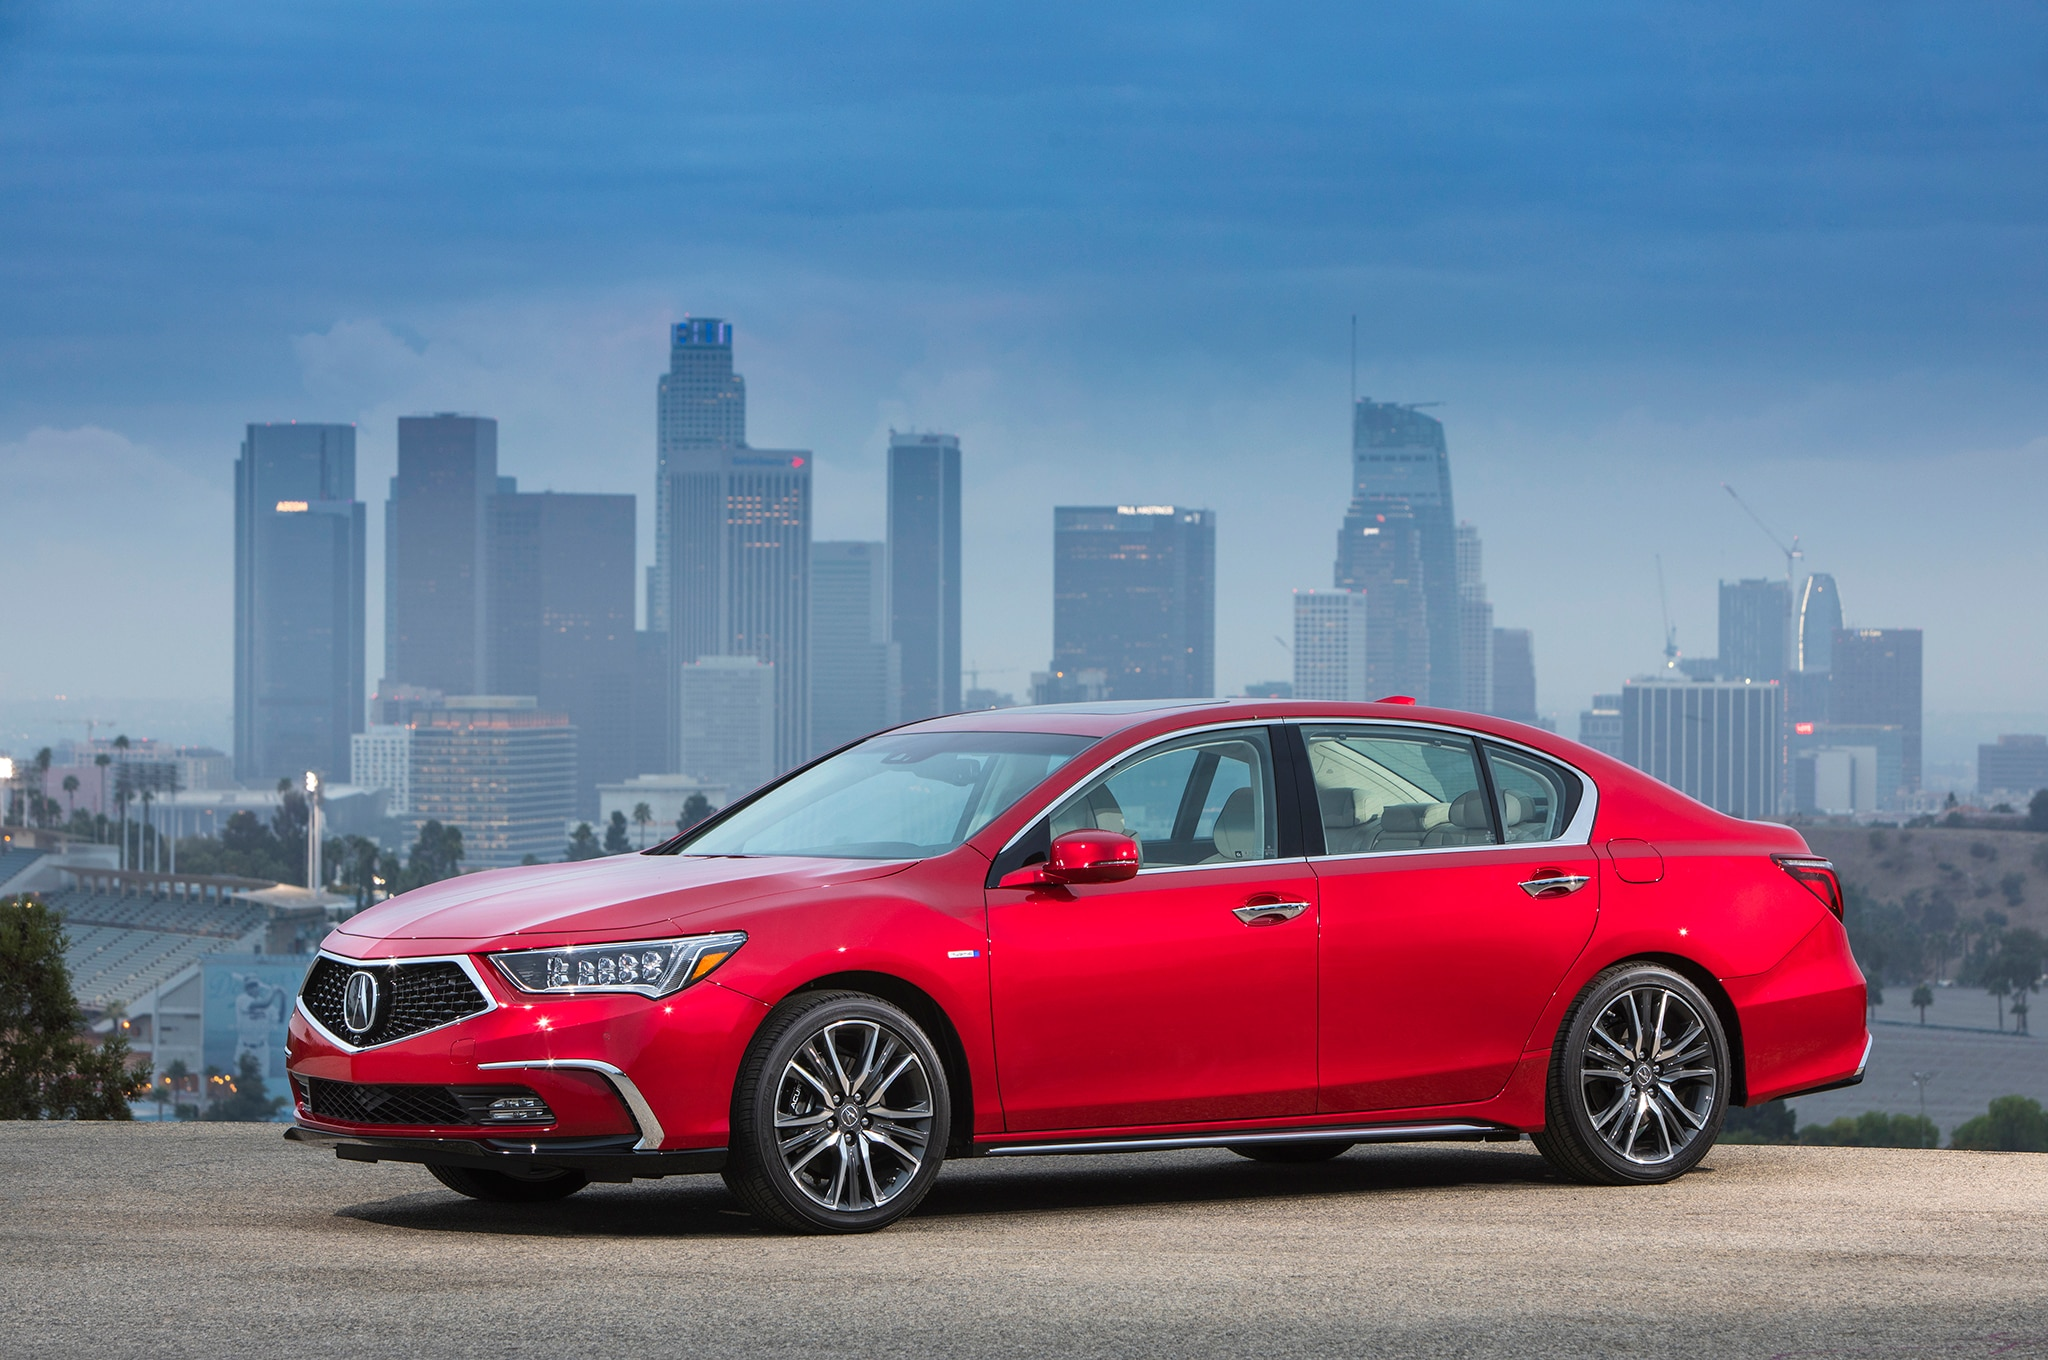 2018 Acura RLX Arrives With New Diamond Pentagon Grille